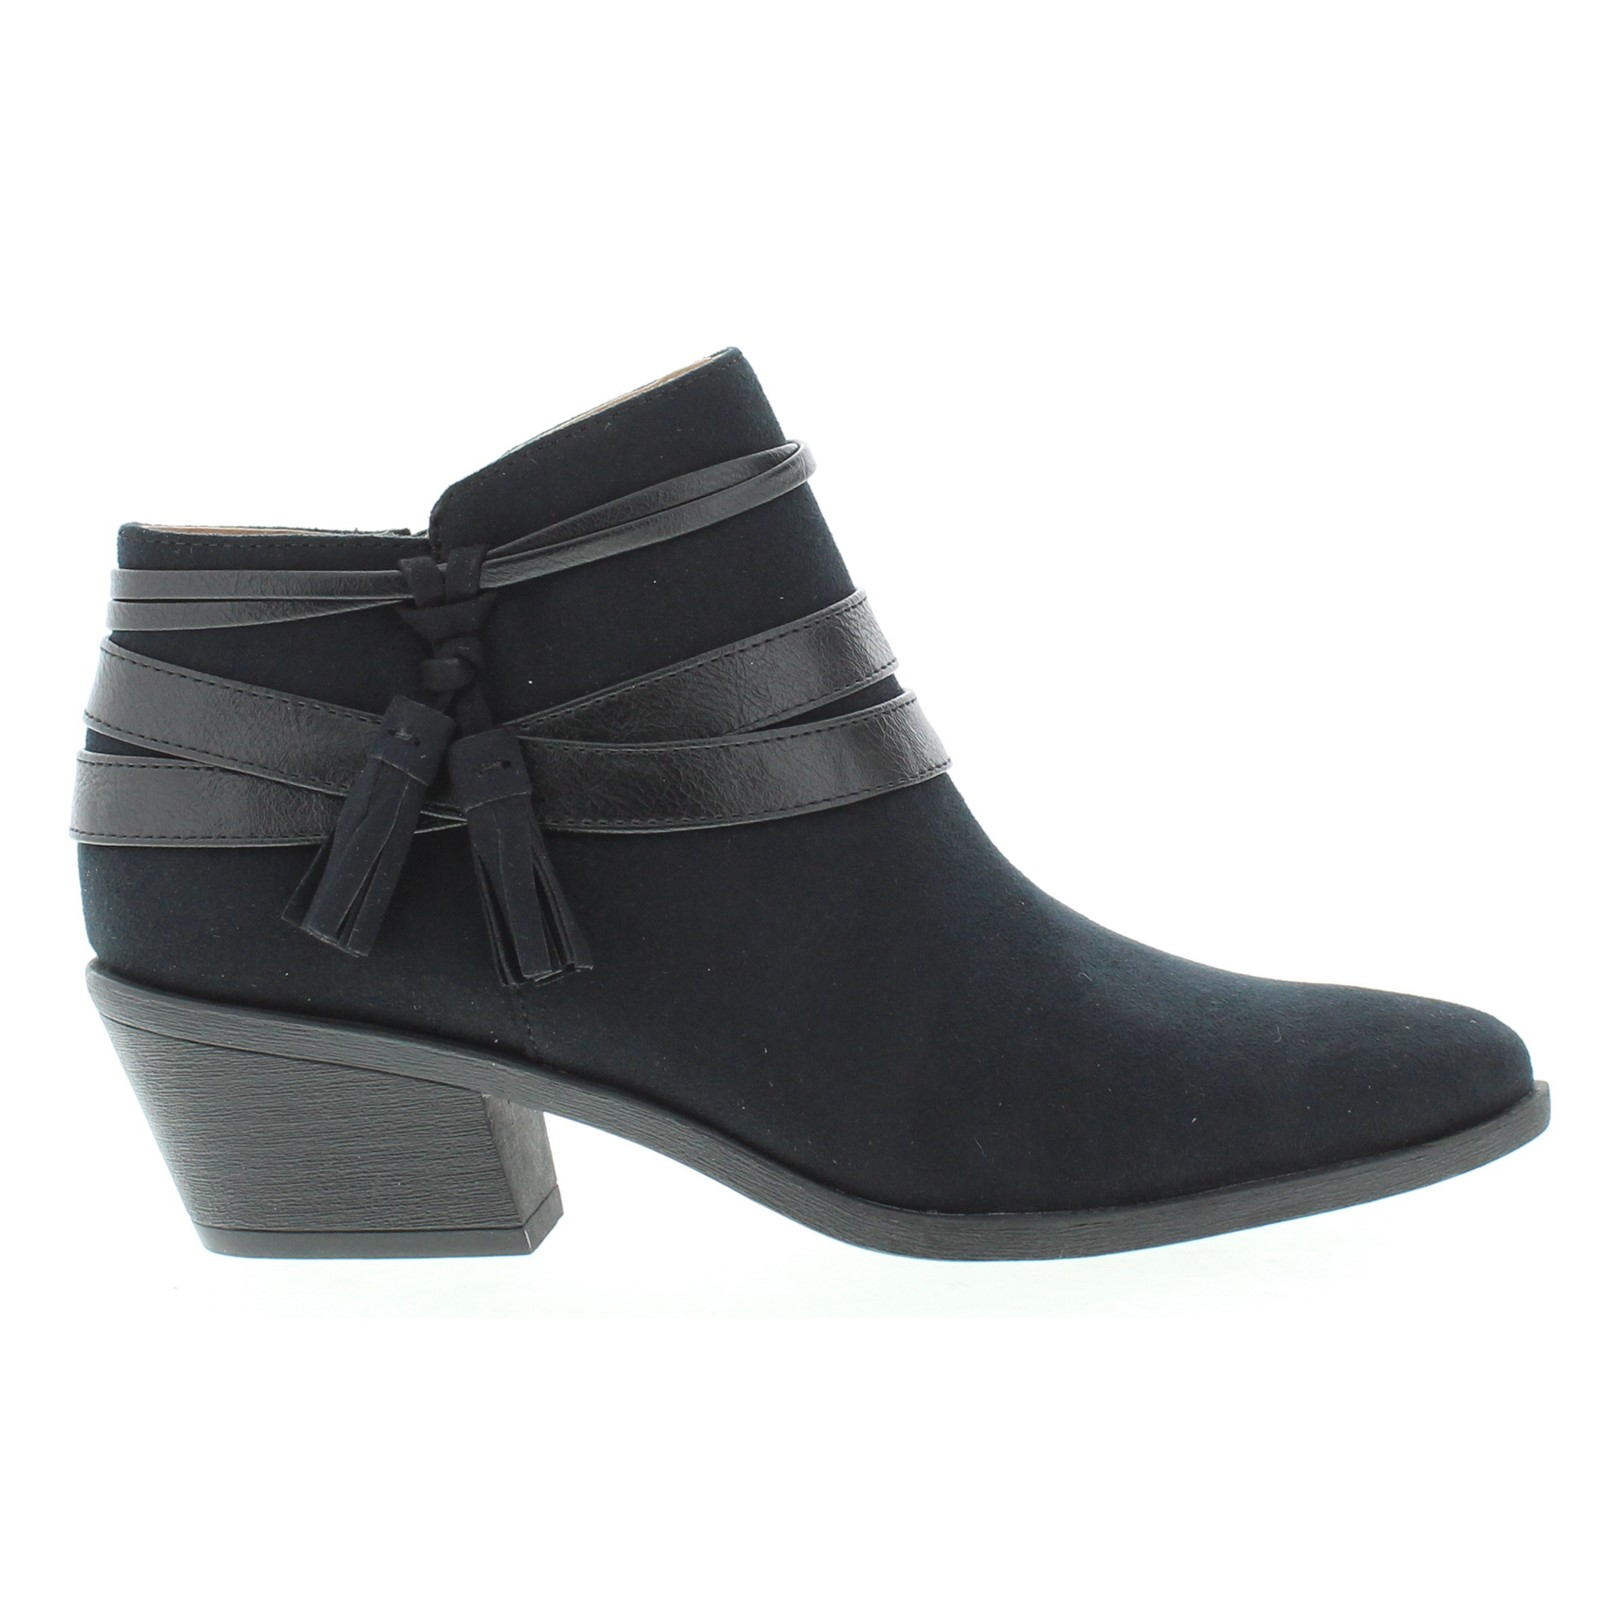 Women's LifeStride, Paloma Ankle Boot